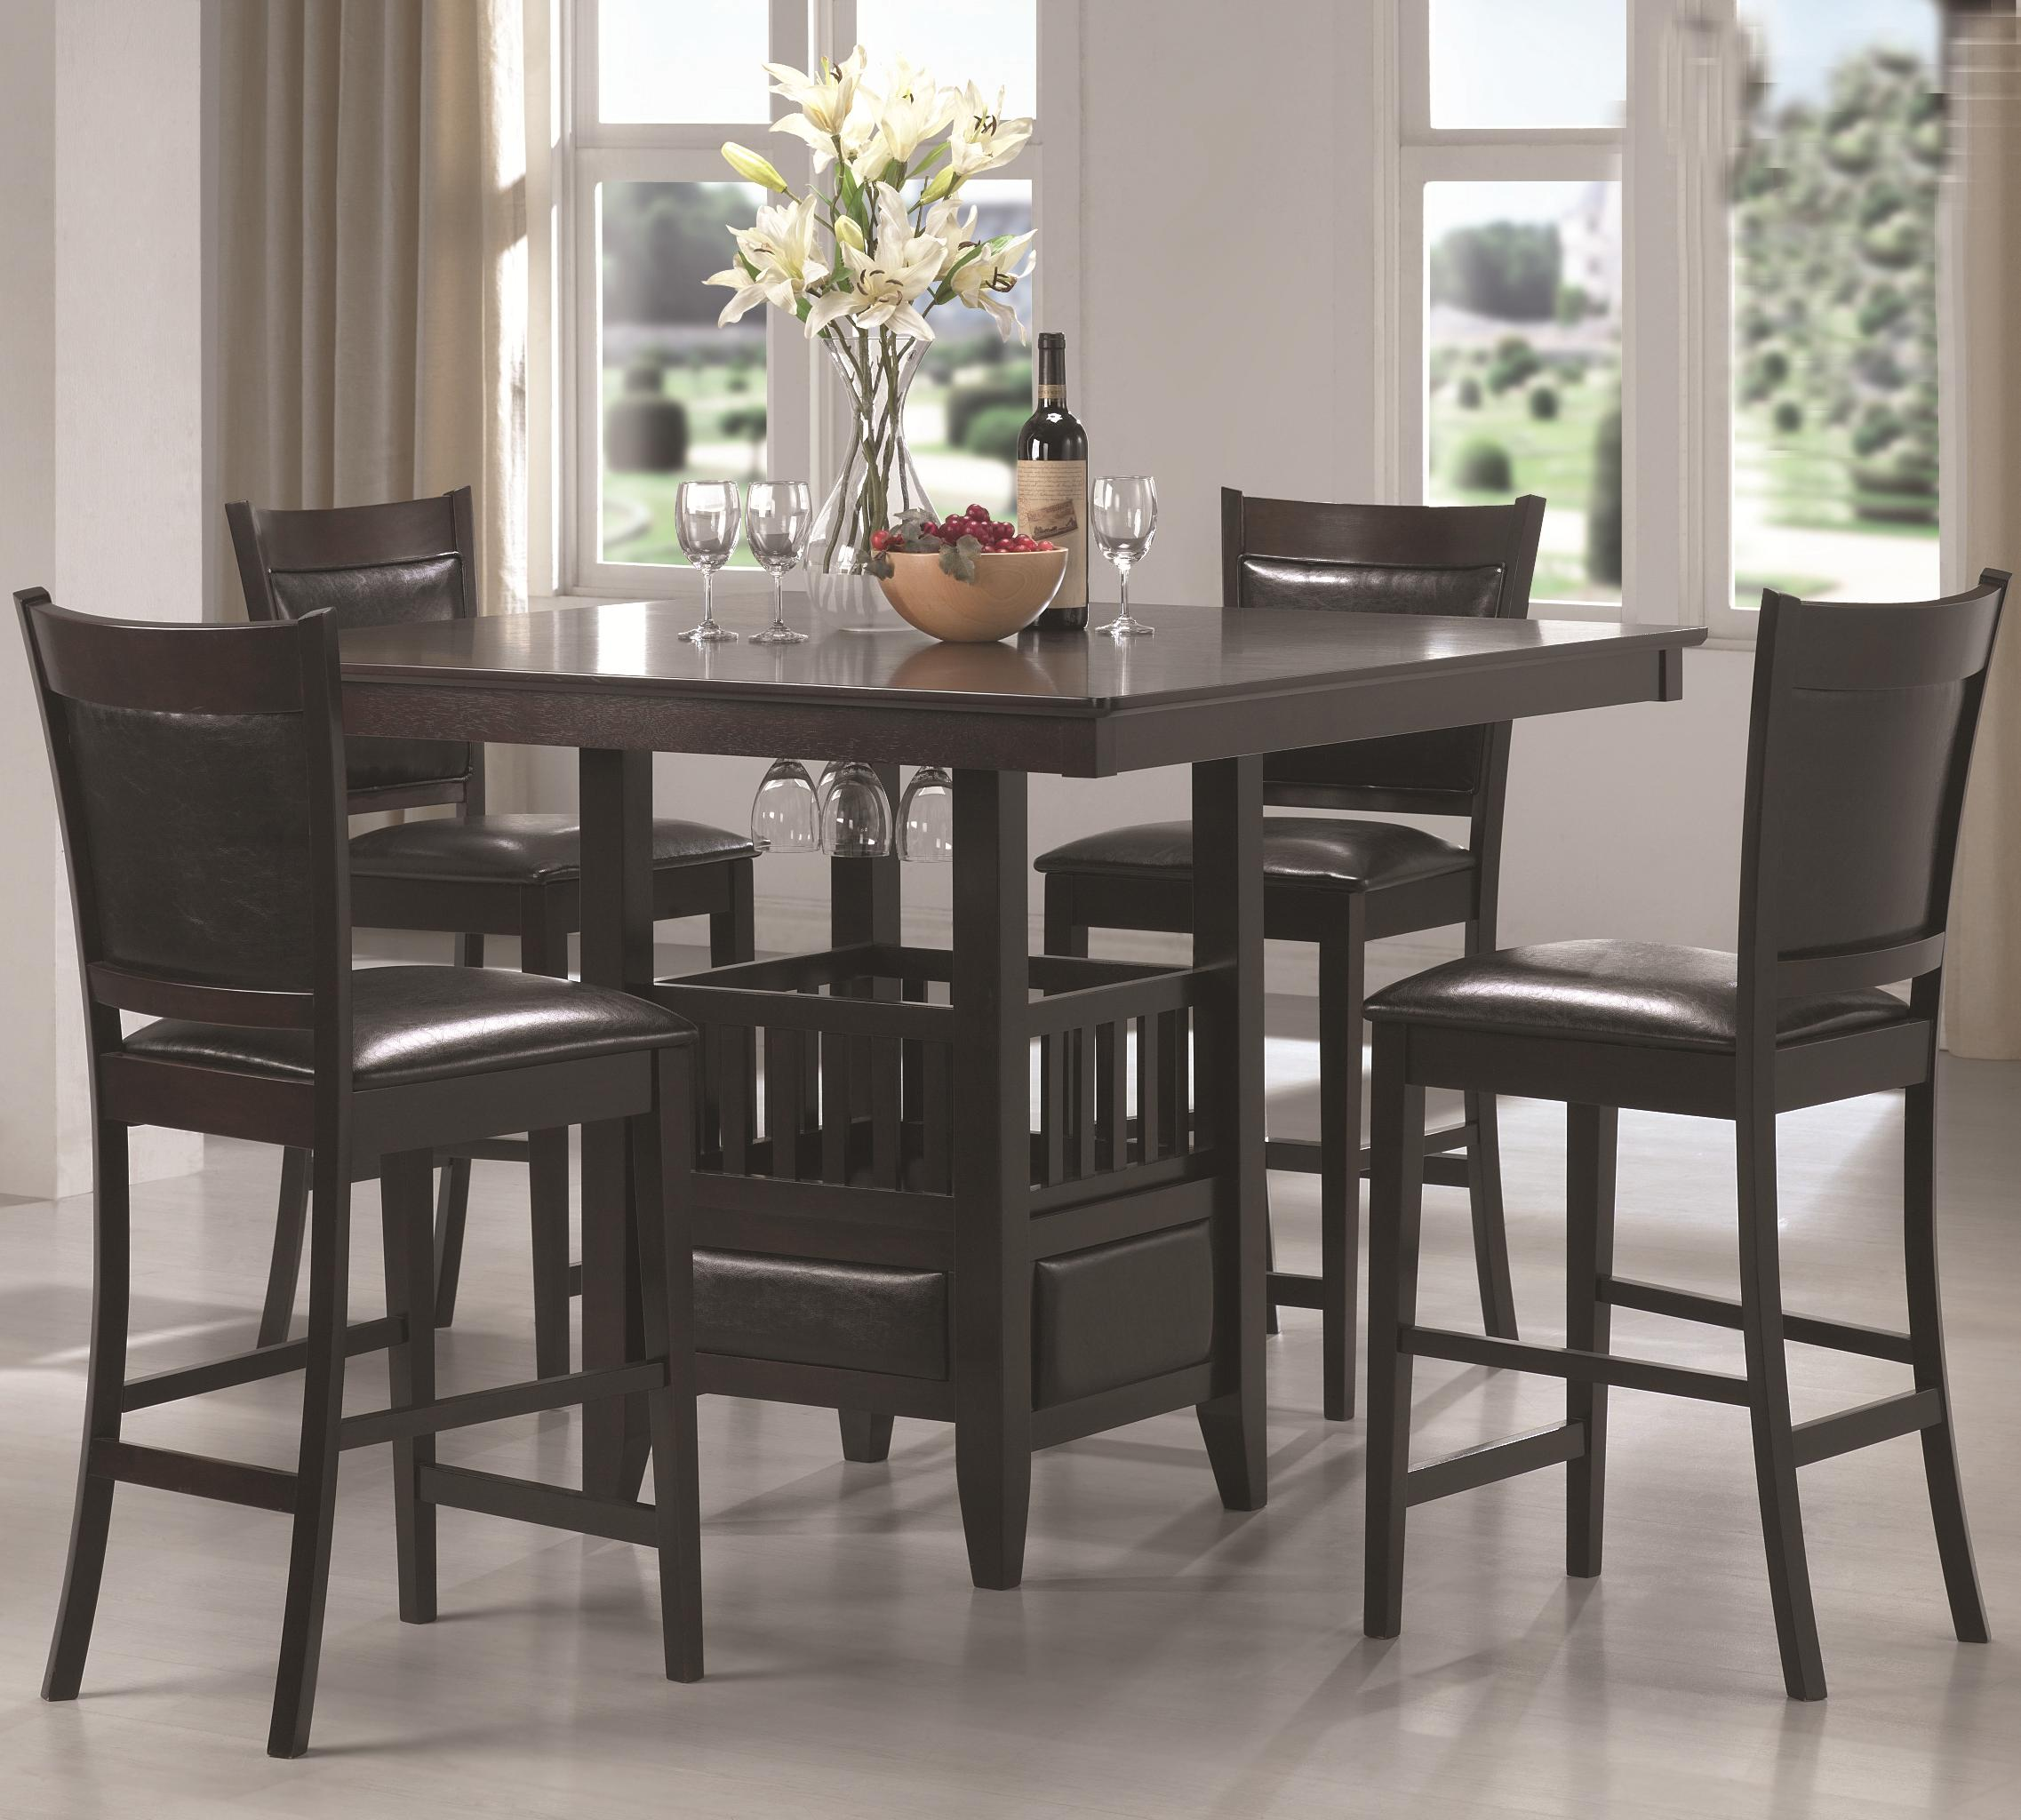 Coaster Jaden Counter Height Table & Stool Set - Item Number: 100958+4x959